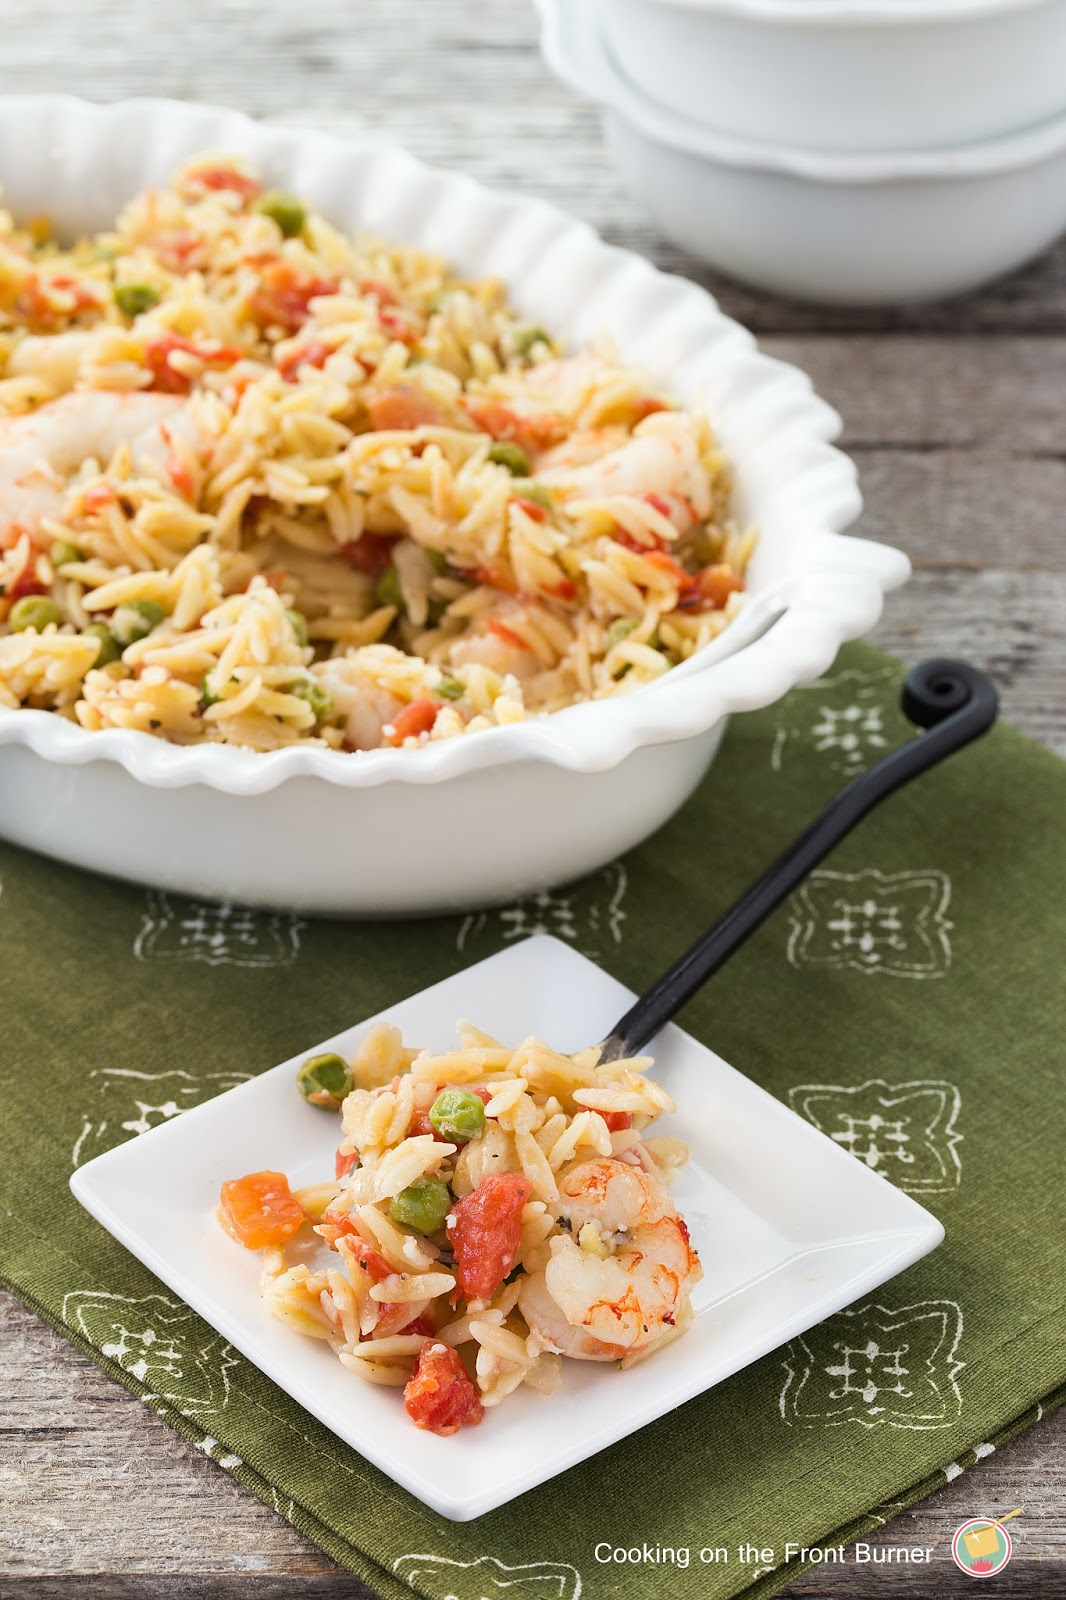 Lemon Orzo Shrimp Bake by Cooking on the Front Burner